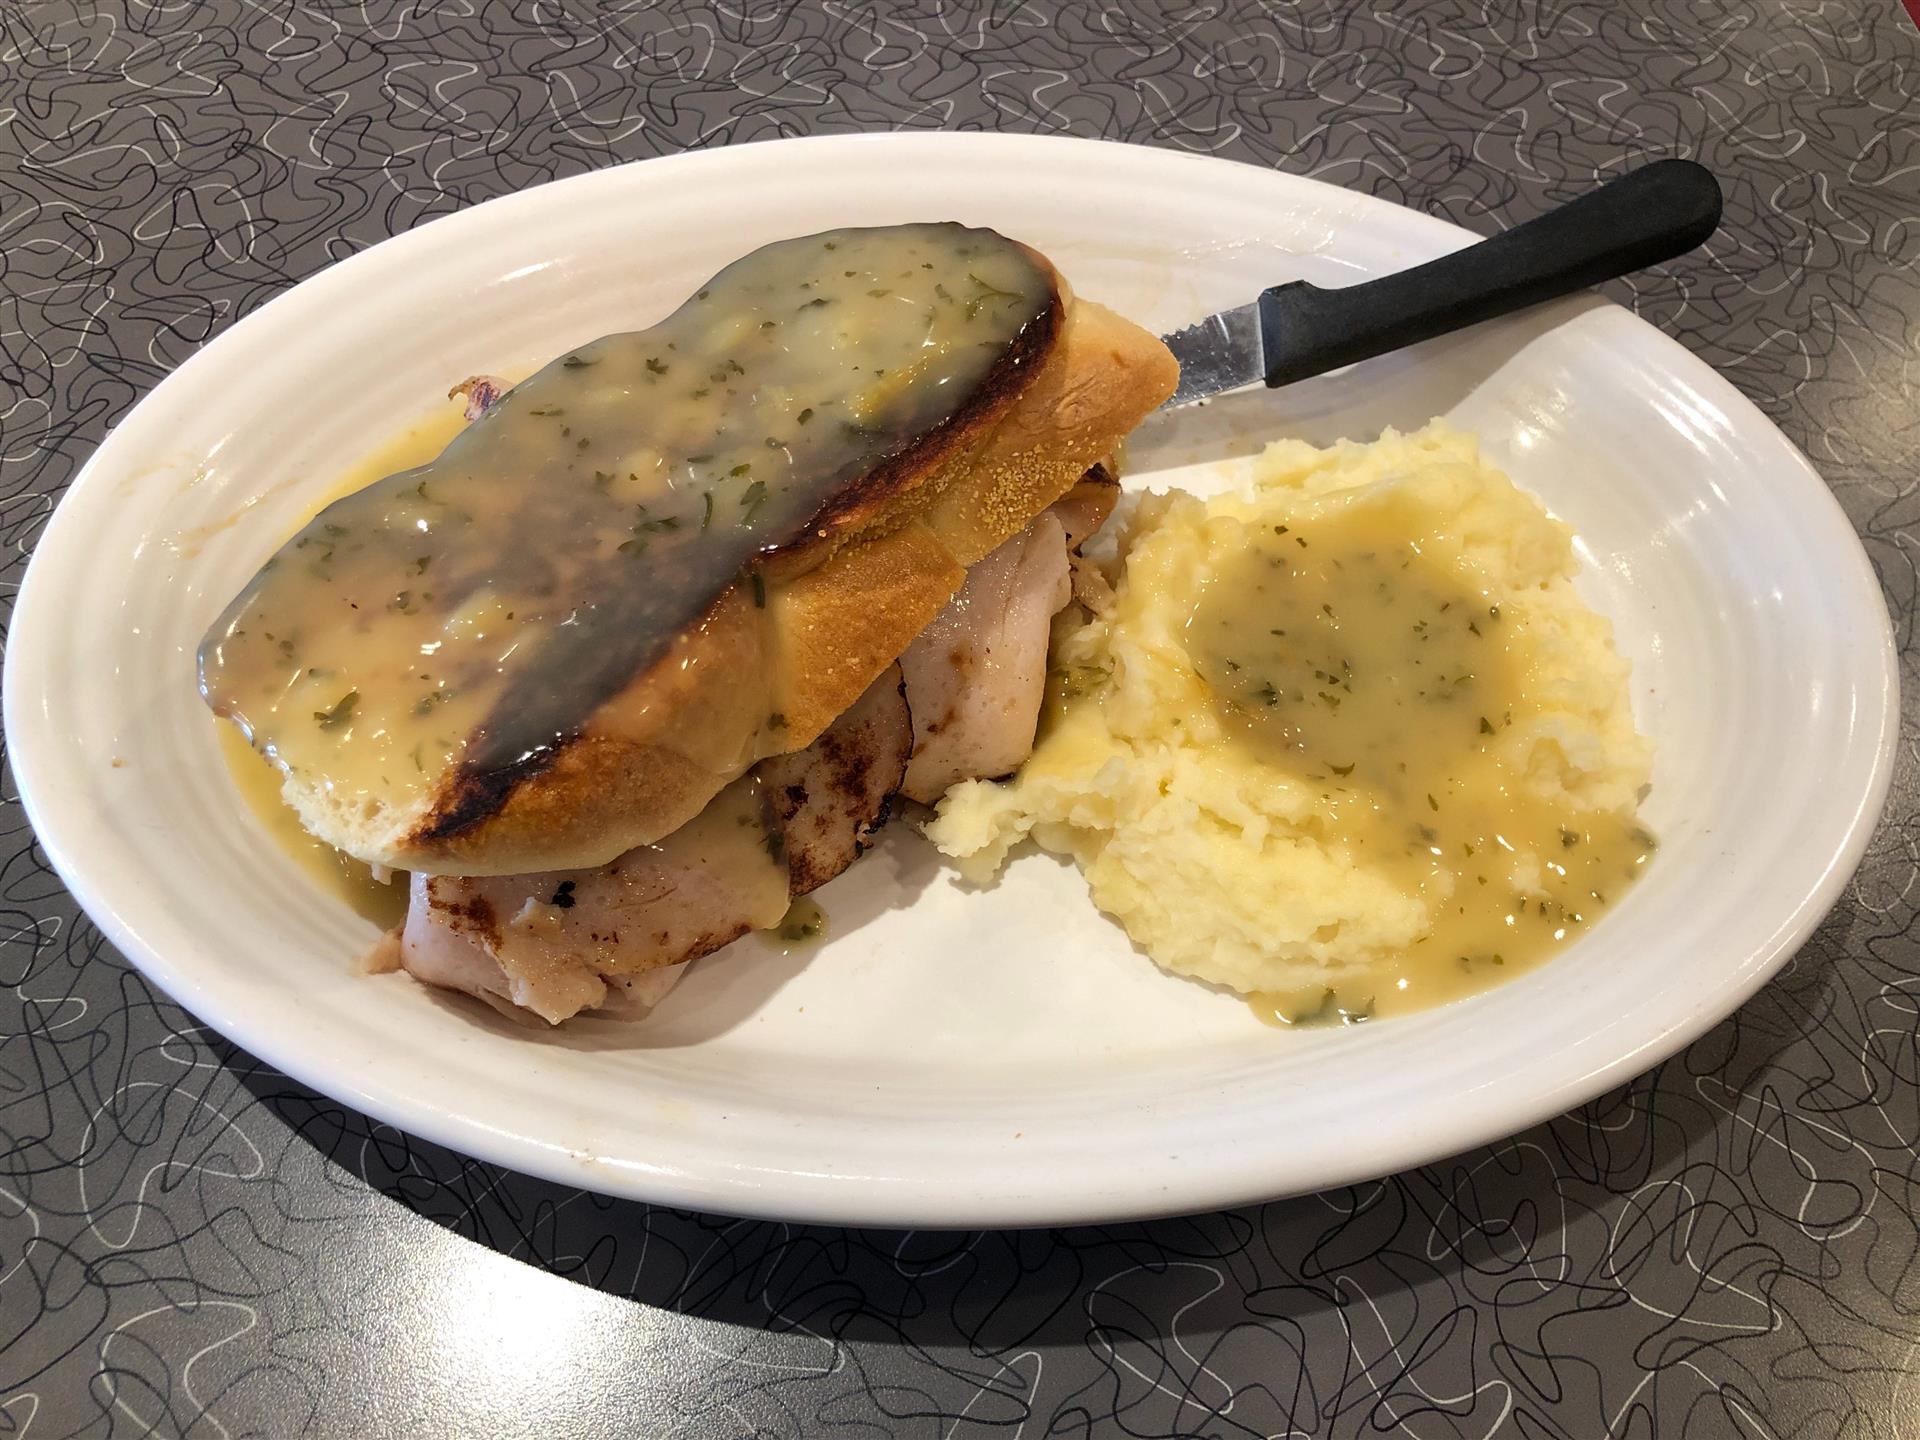 a turkey sandwich with a side of mashed potatoes both covered in gravy